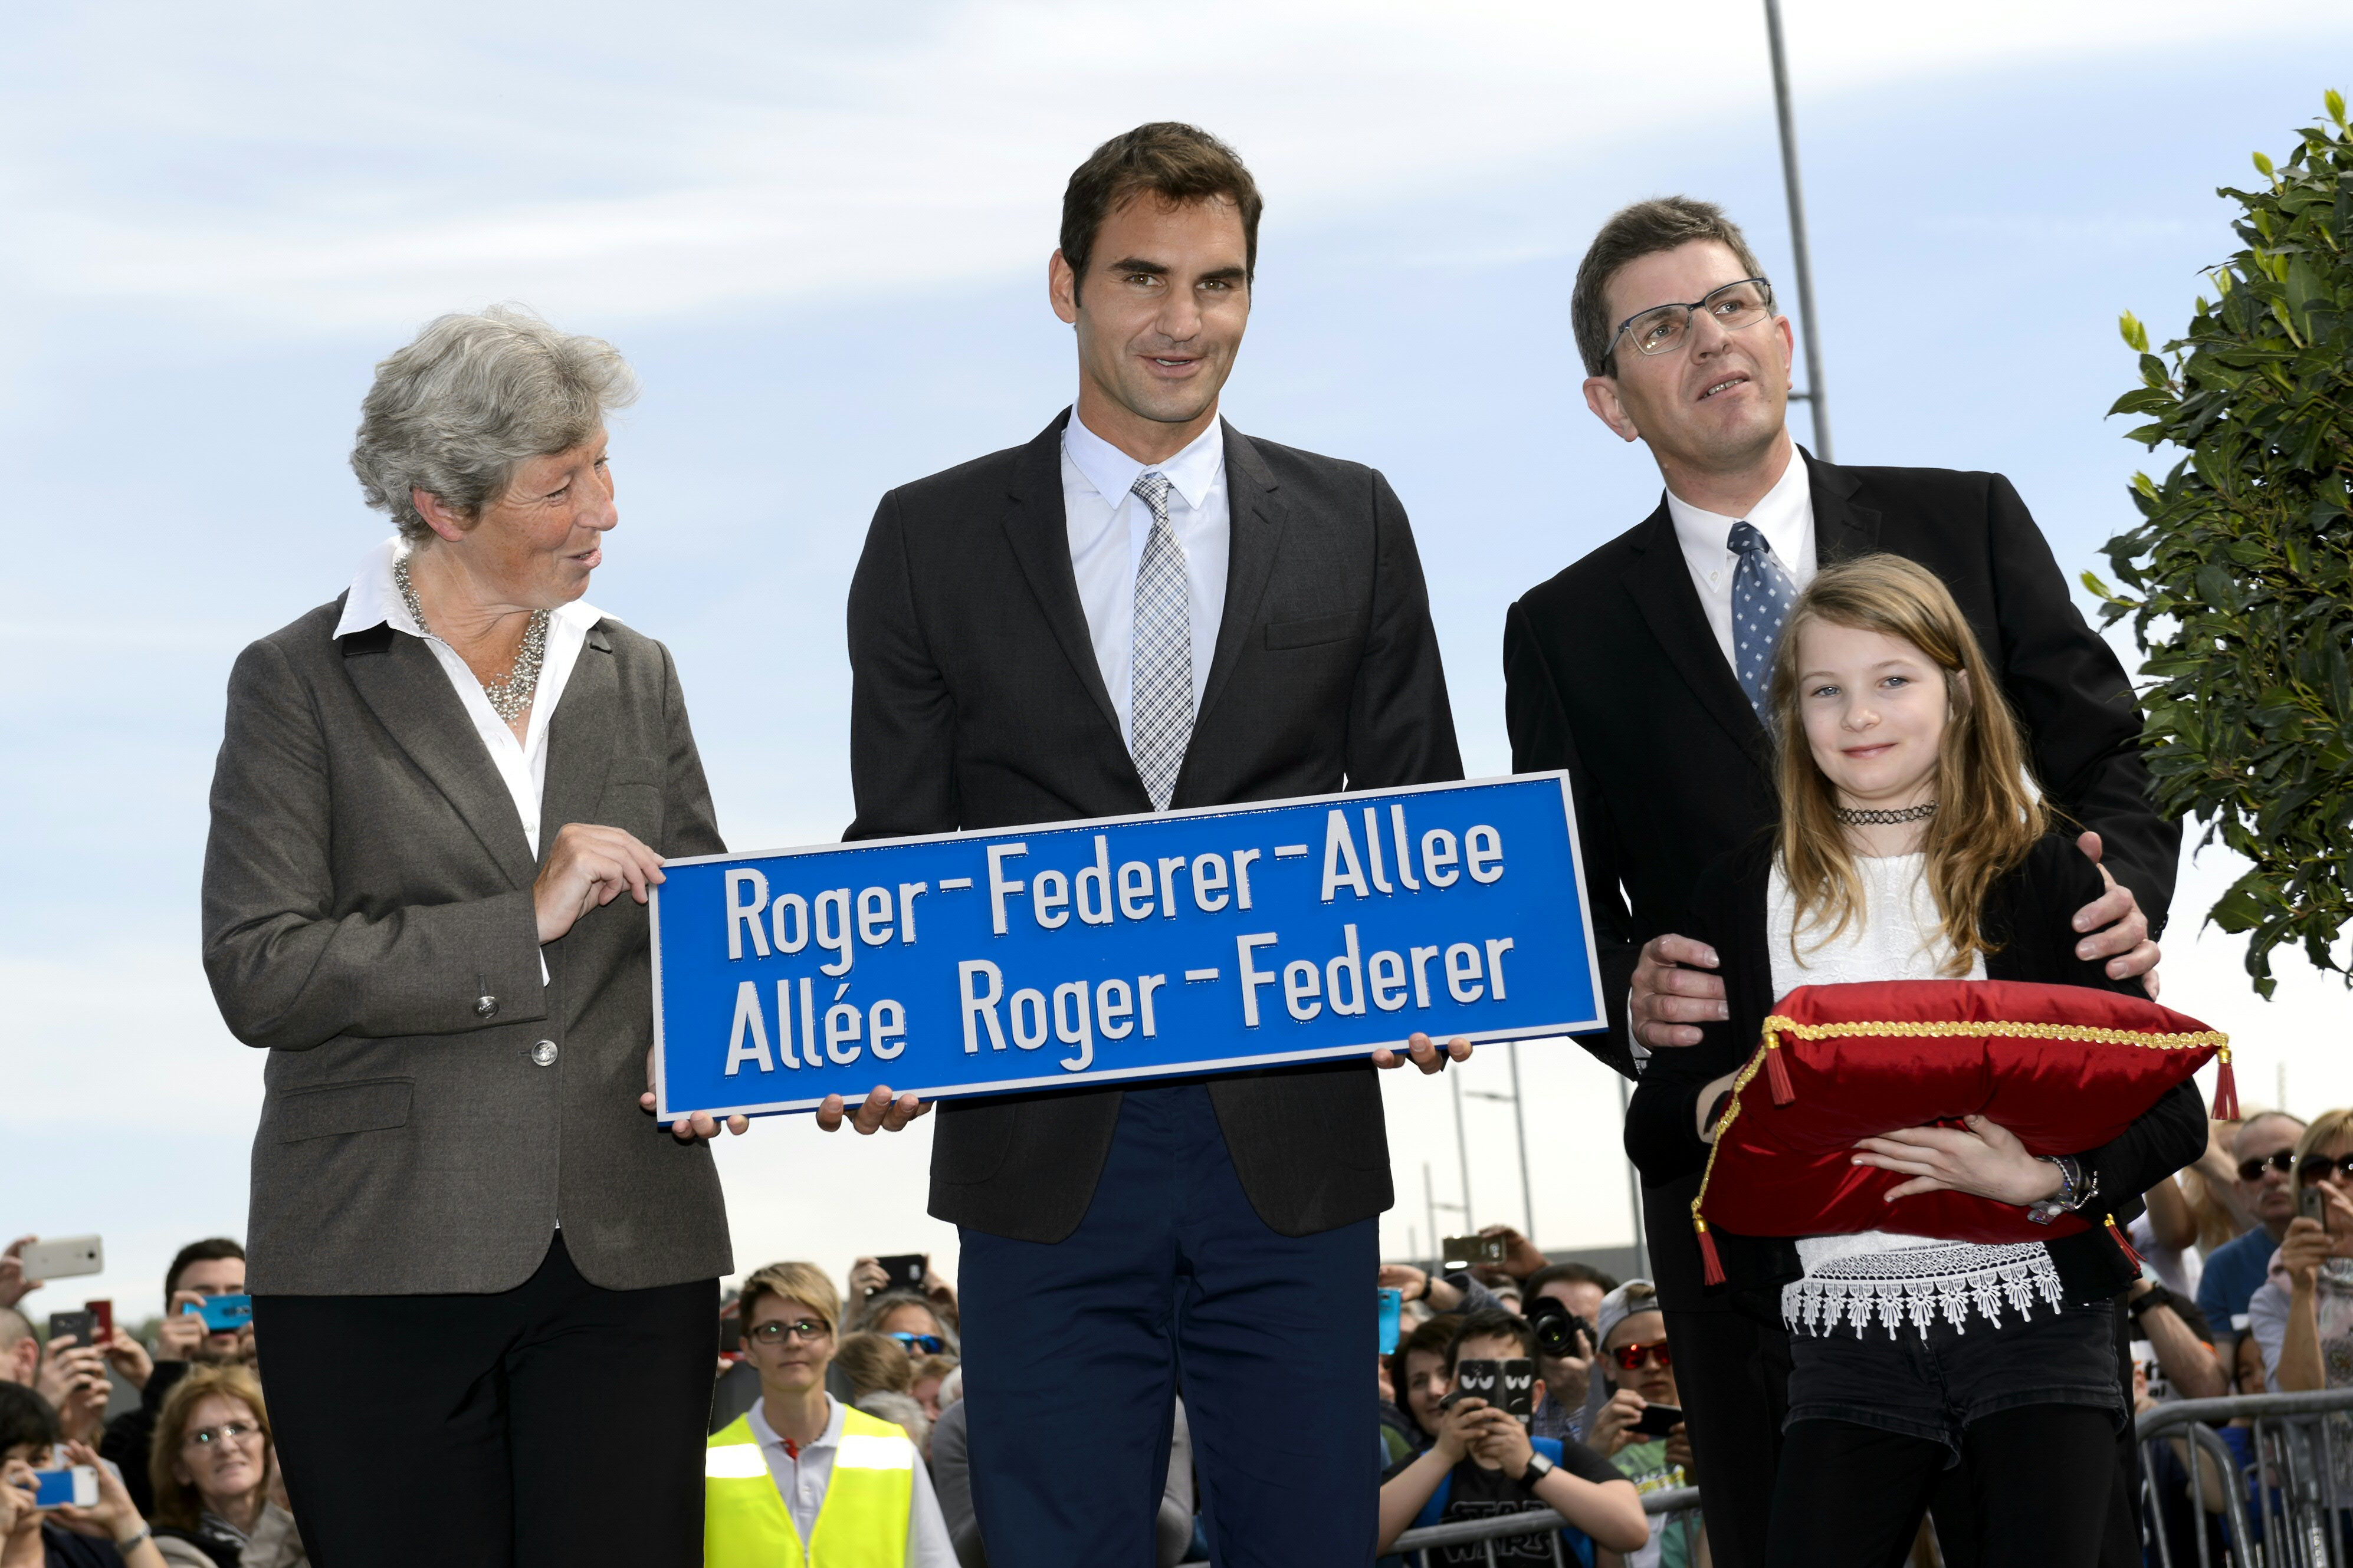 Swiss tennis champion Roger Federer (C) takes part in the ceremony marking the inauguration of a street bearing his name next to Mayor of the city of Biel, Erich Fehr (R) and member of the council of Biel Barbara Schwickert on April 21, 2016 in Biel. The street is located next to the Swiss tennis center where Federer completed its tennis studies. / AFP PHOTO / FABRICE COFFRINI